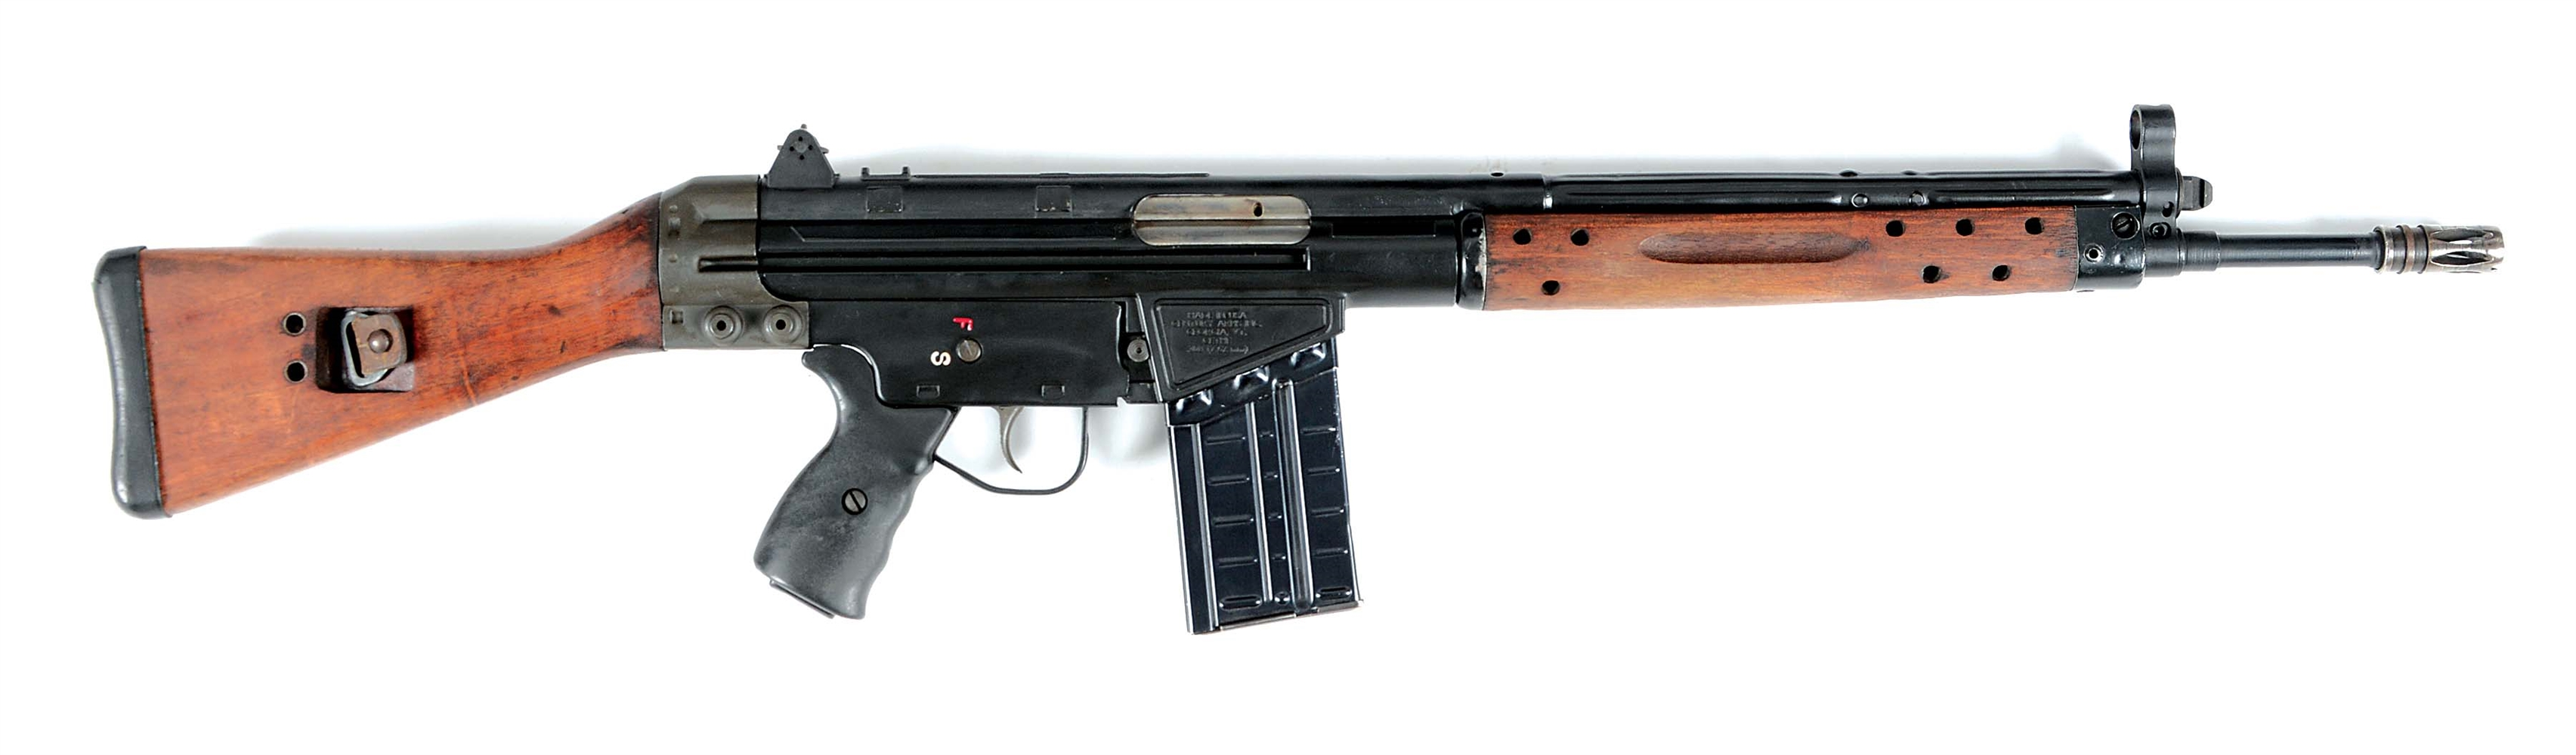 (M) Century Arms CETME Semi-Automatic Rifle.